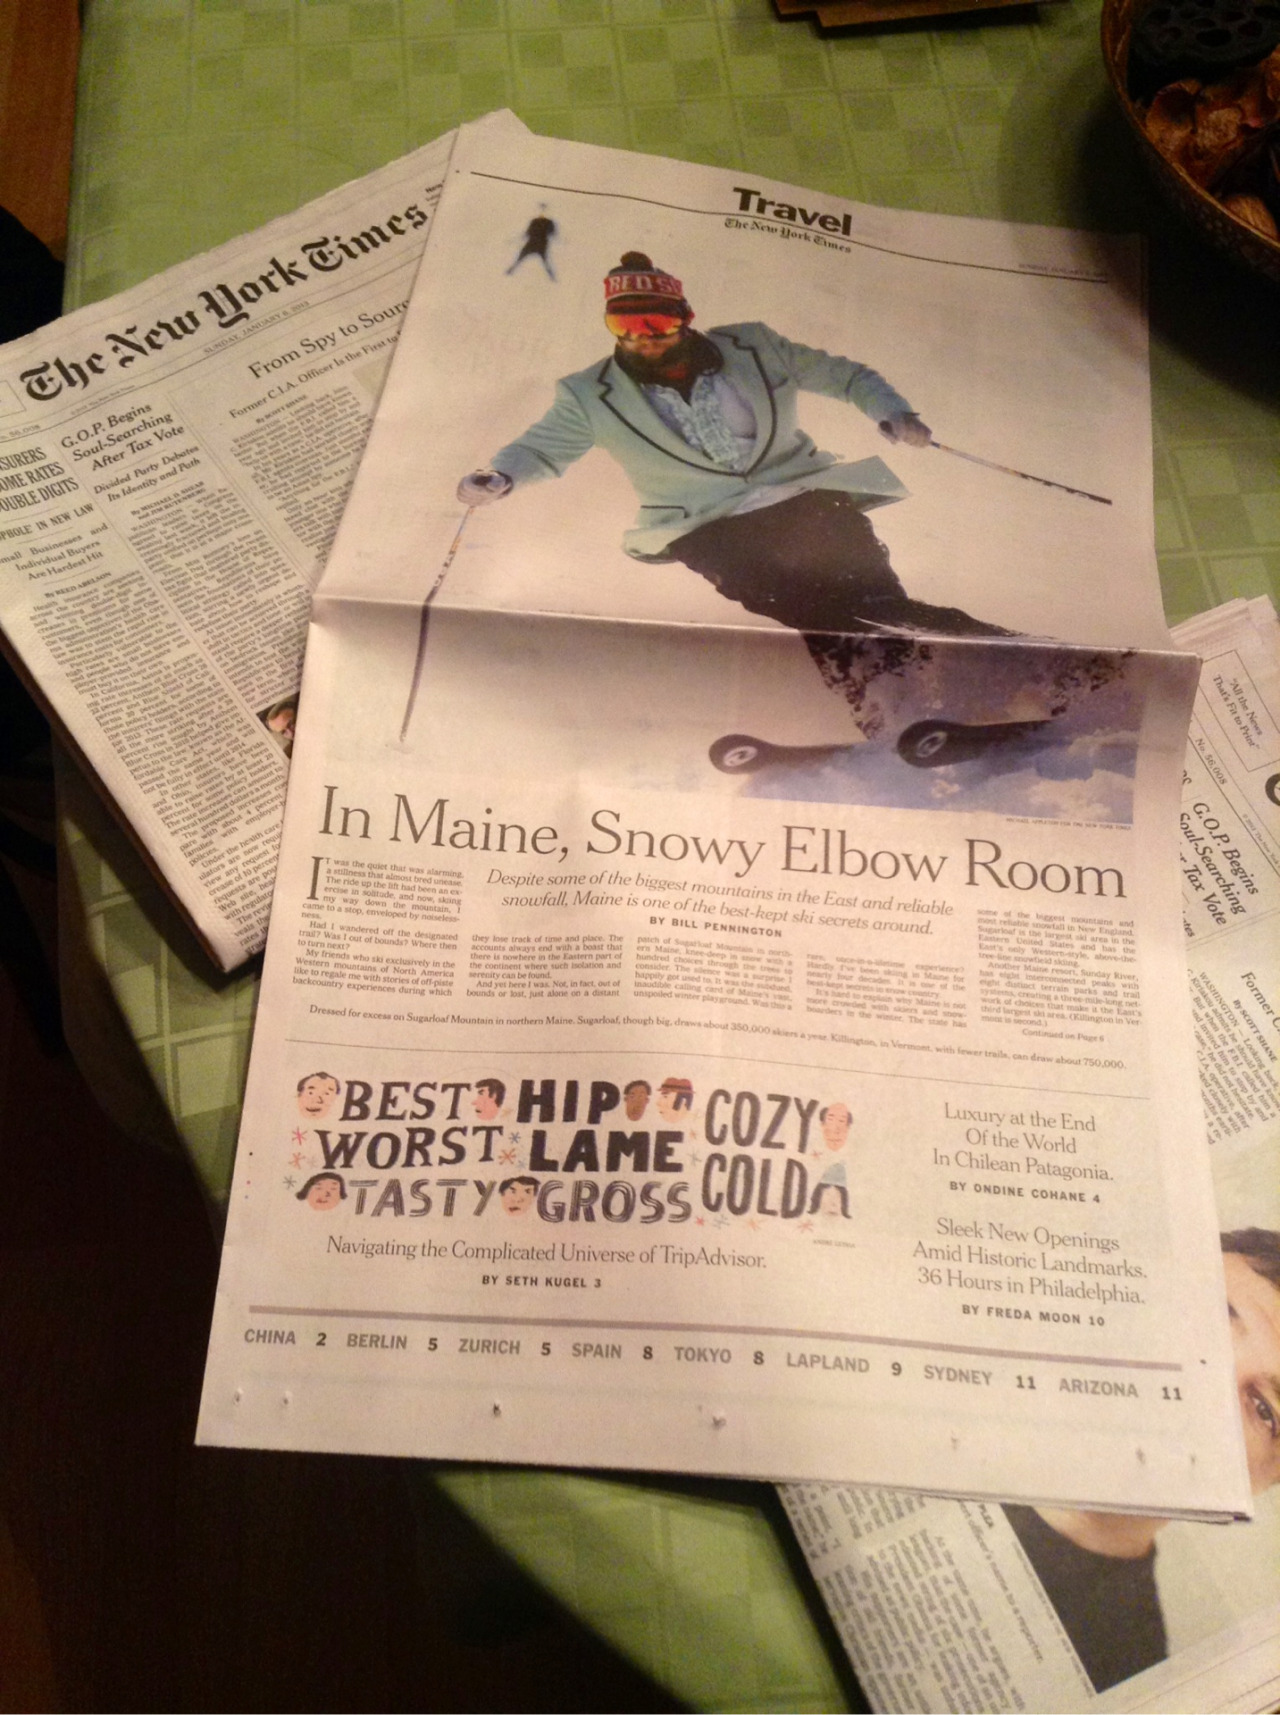 Somehow it seems fitting that the Sugarloaf skier who made 3/4 of a page in the Sunday Times would be wearing a turquoise tuxedo.